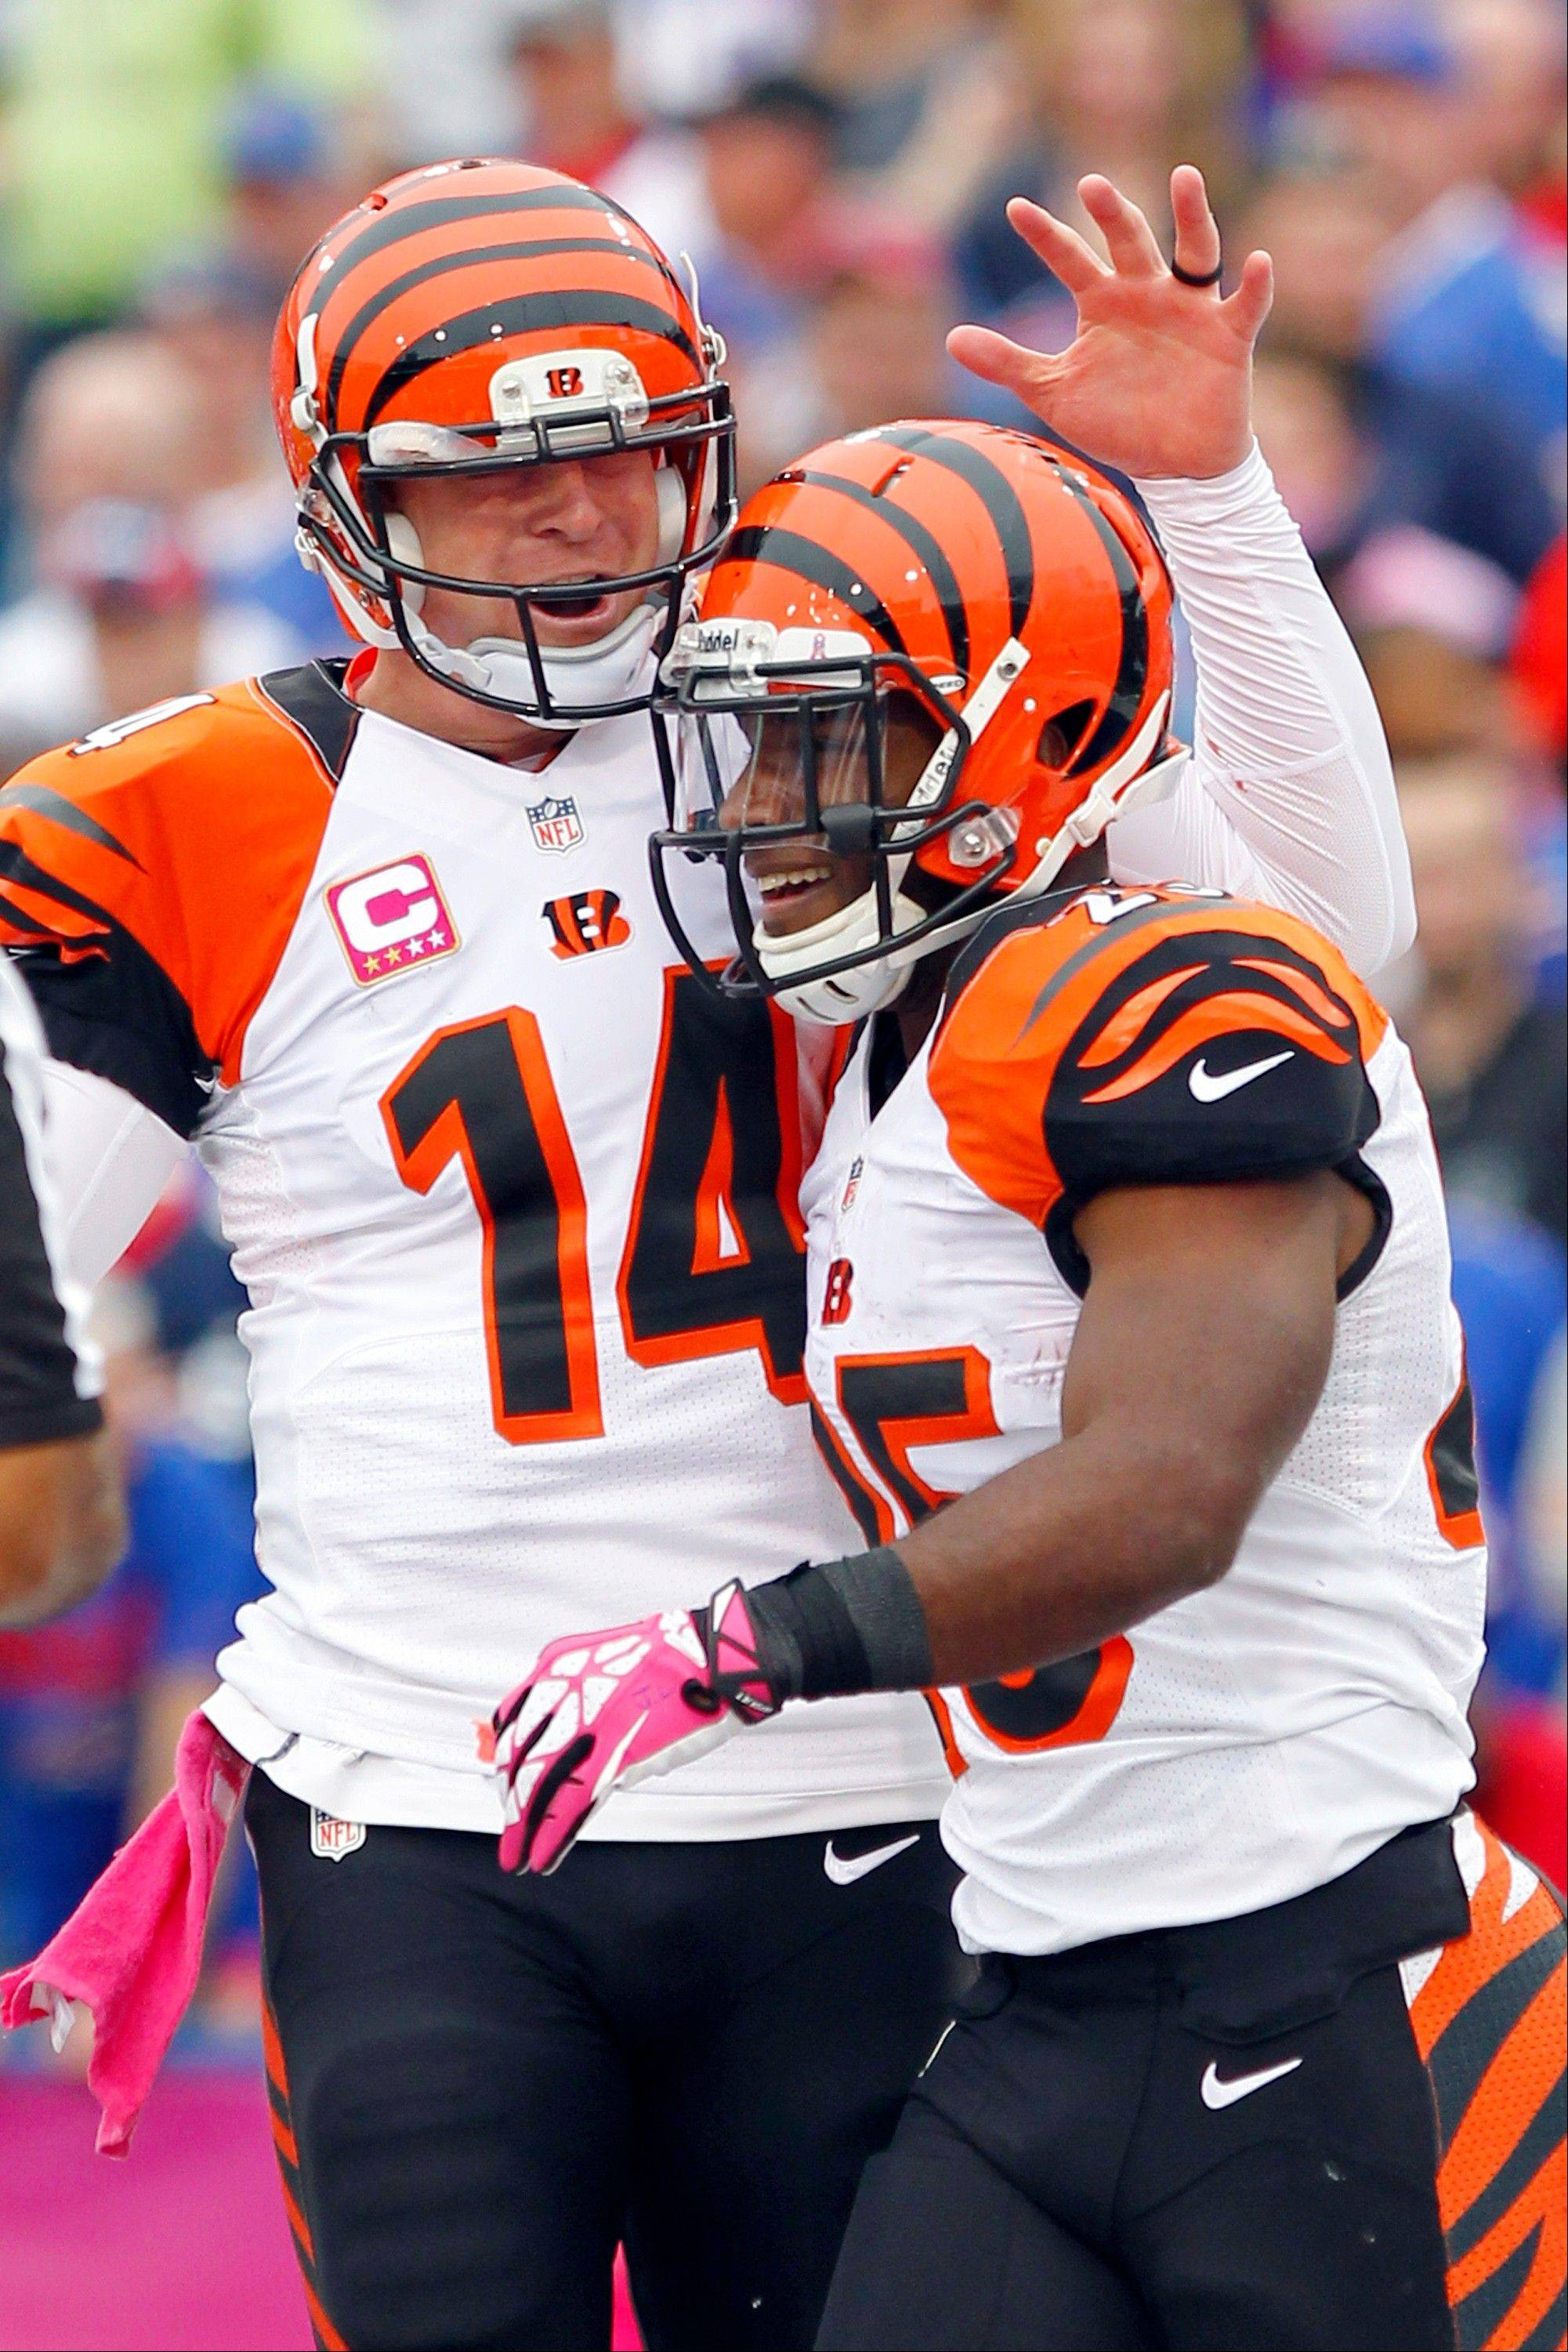 Bengals down Bills 27-24 in OT